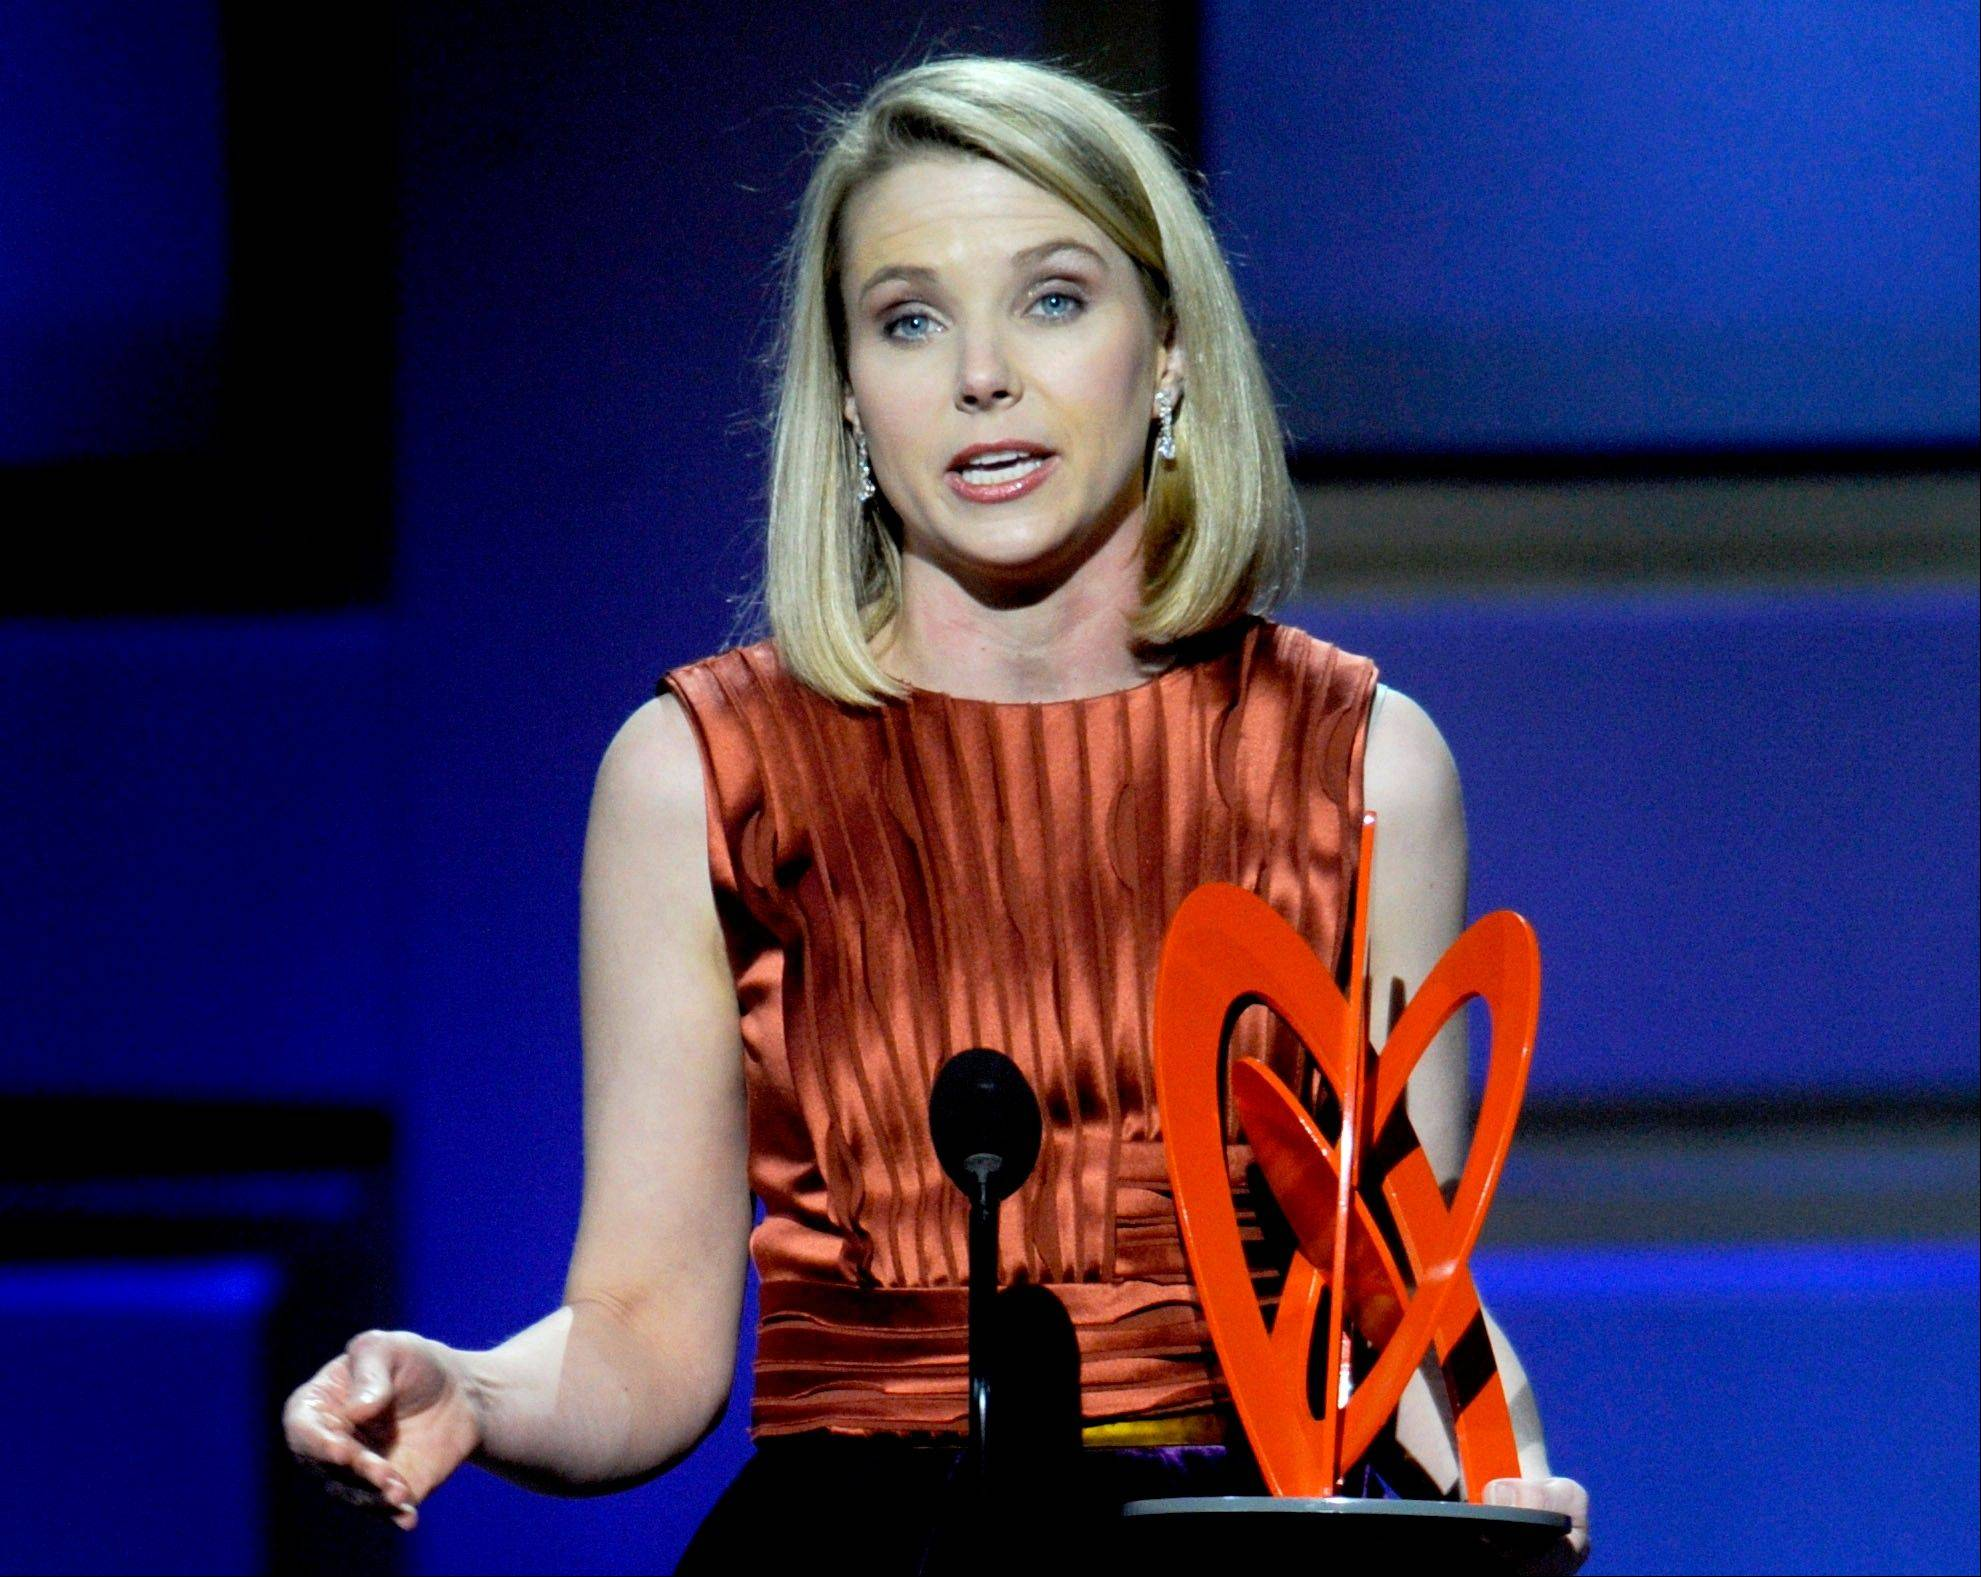 CEO Marissa Mayer has embarked on an aggressive strategy in an effort to turn Yahoo's fortunes around.